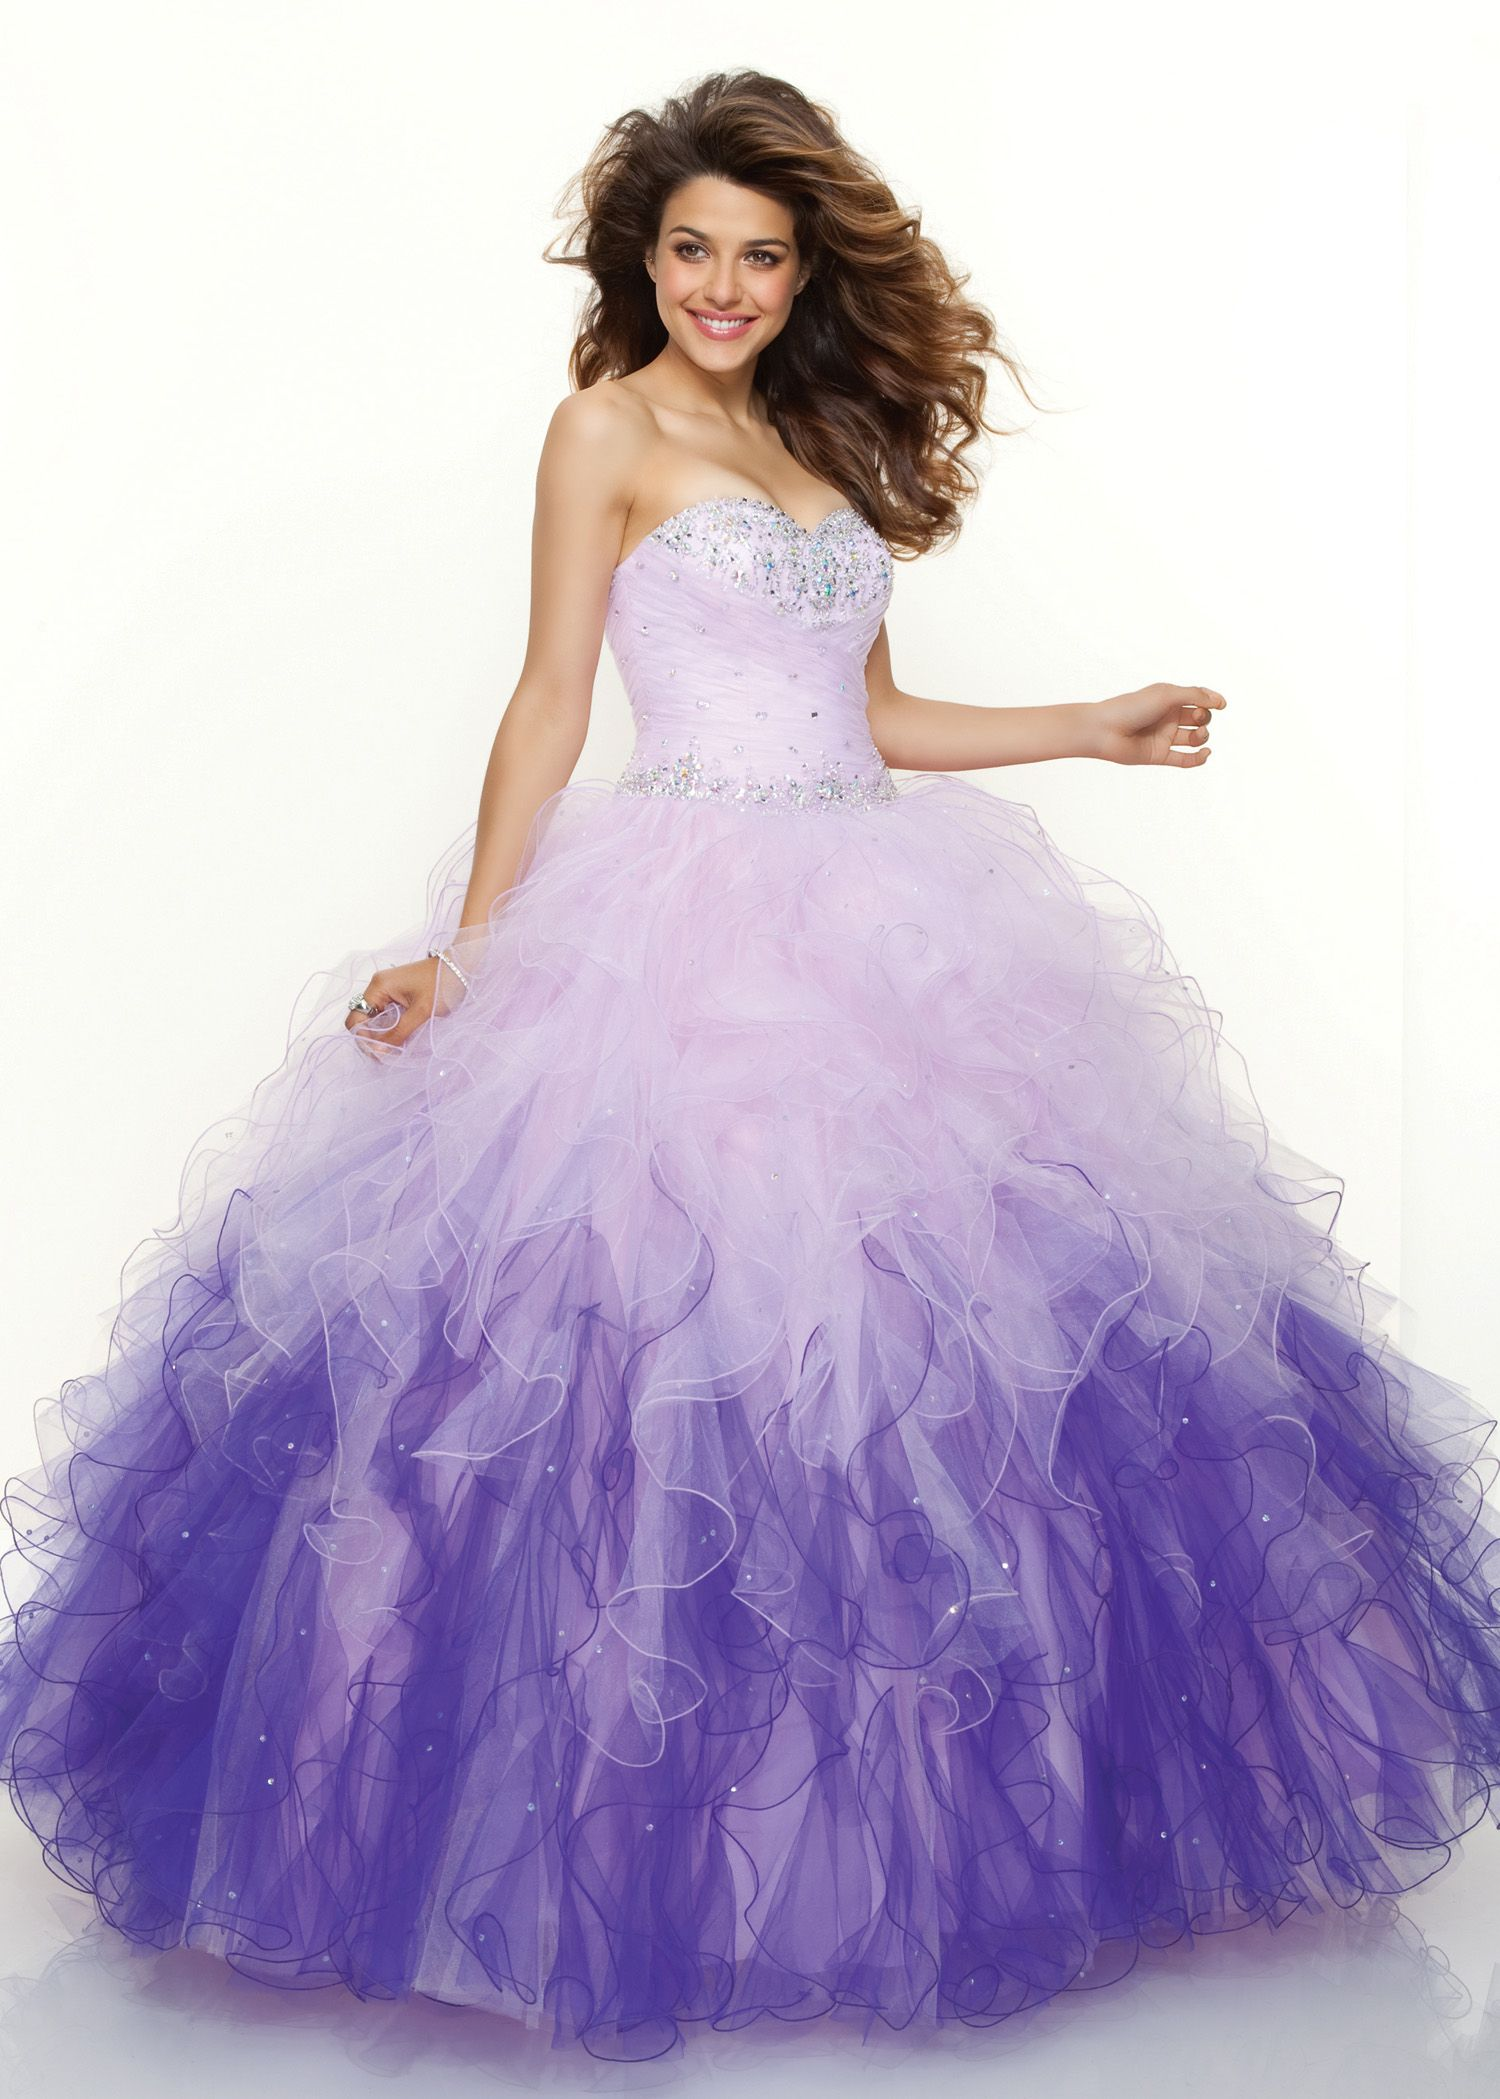 Purple Poofy Prom Dresses